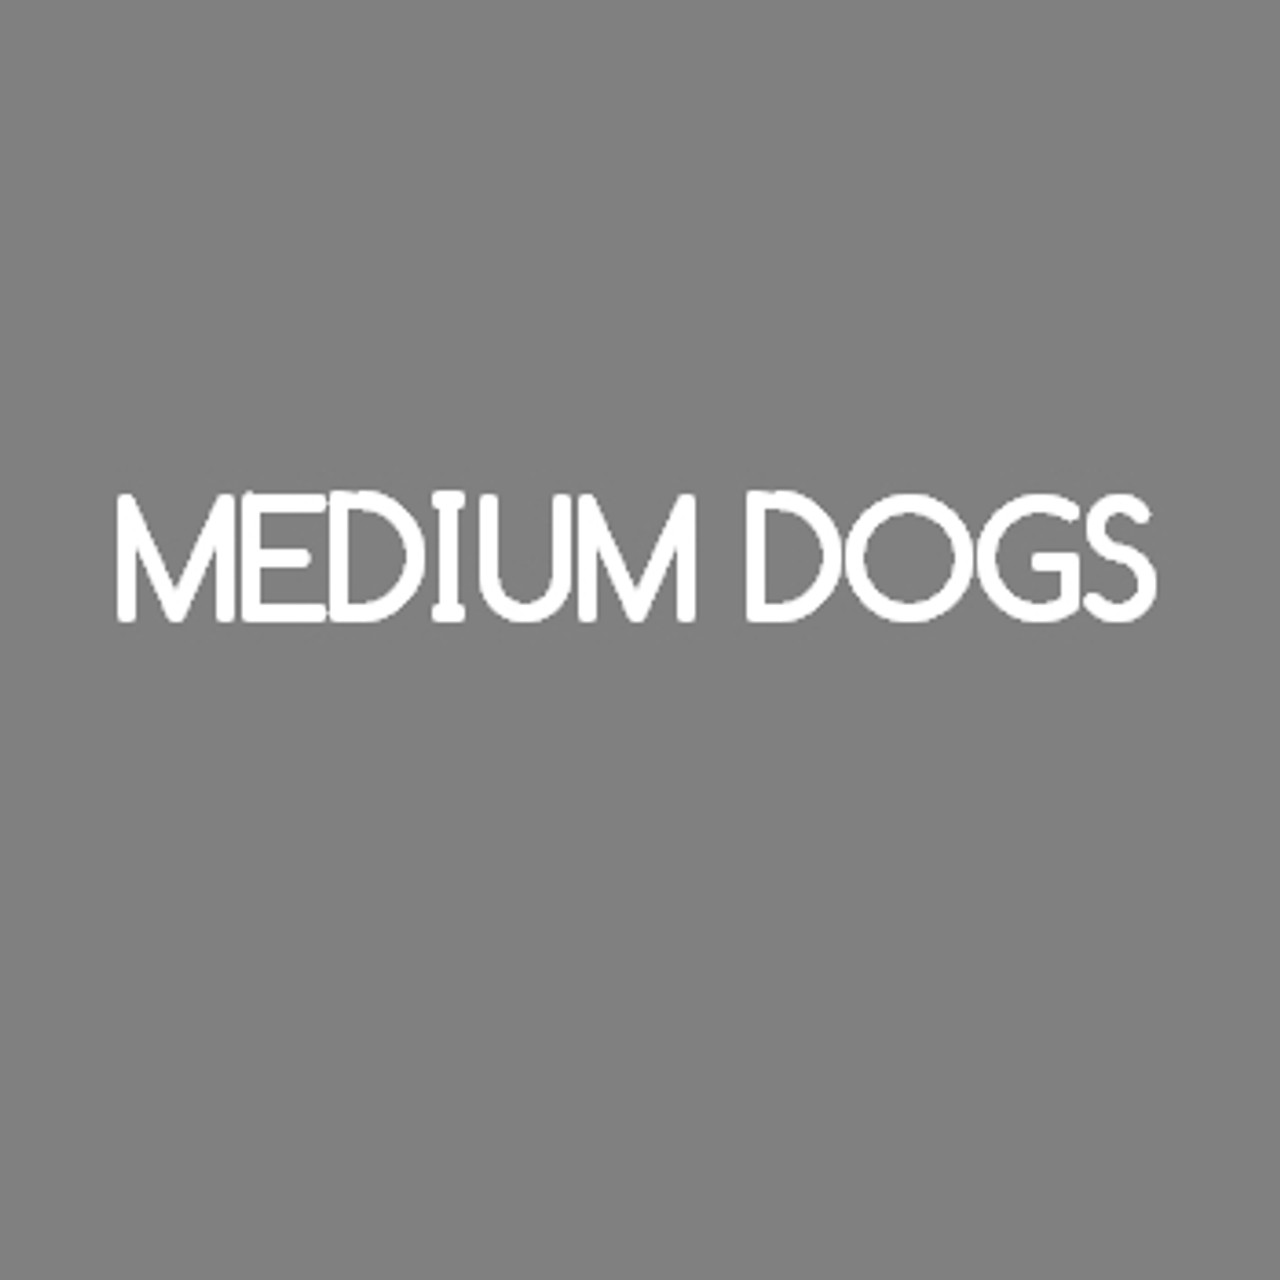 For medium size dogs